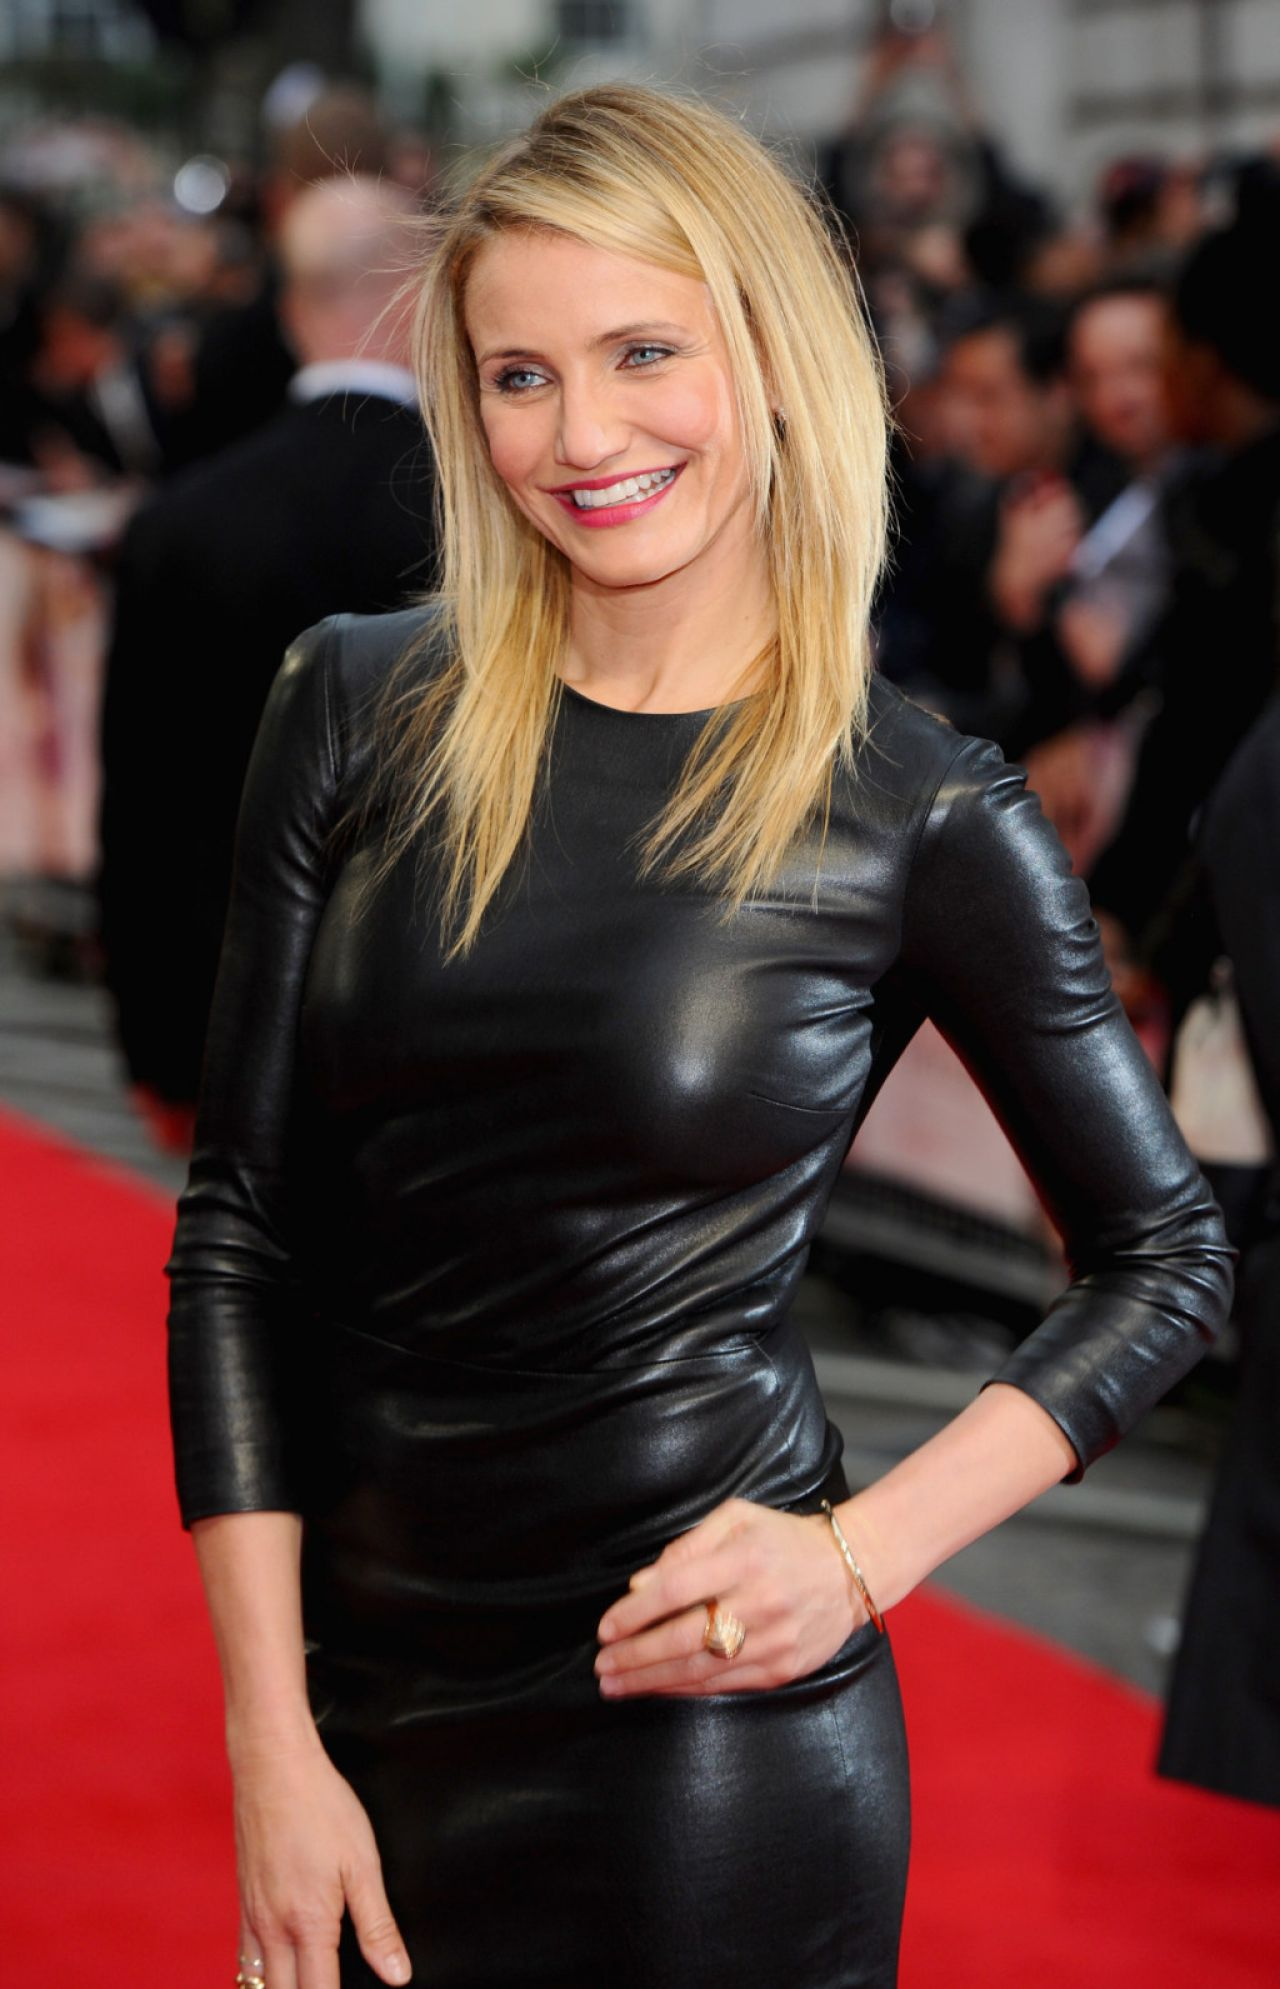 Cameron Diaz – 'The Other Woman' Premiere in London Cameron Diaz